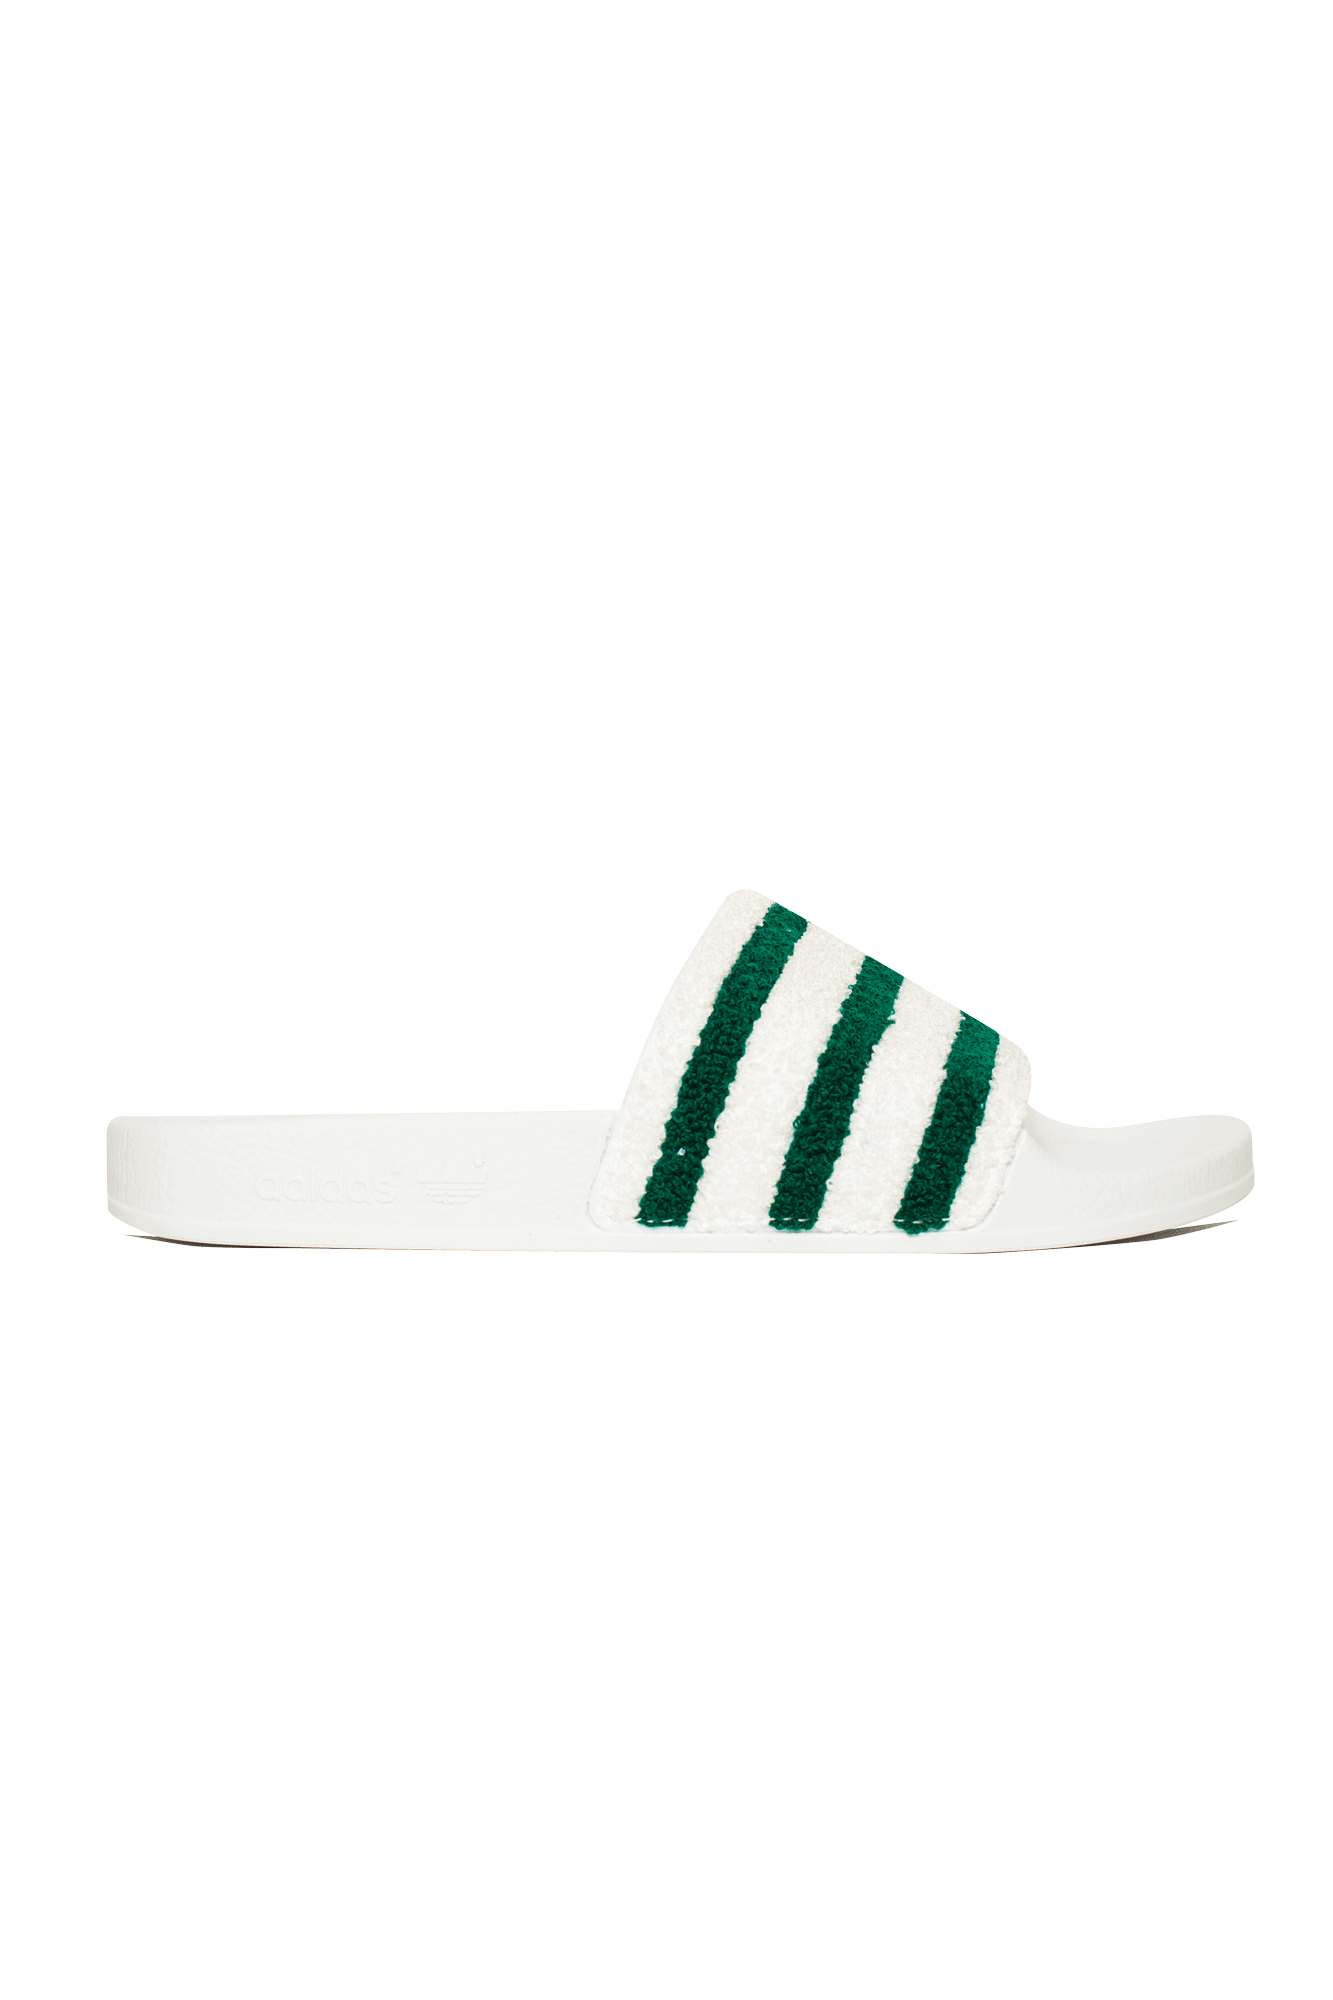 Adidas Originals Sandali & Ciabatte Adilette Bianco BB0124#000#C0006#7 - One Block Down